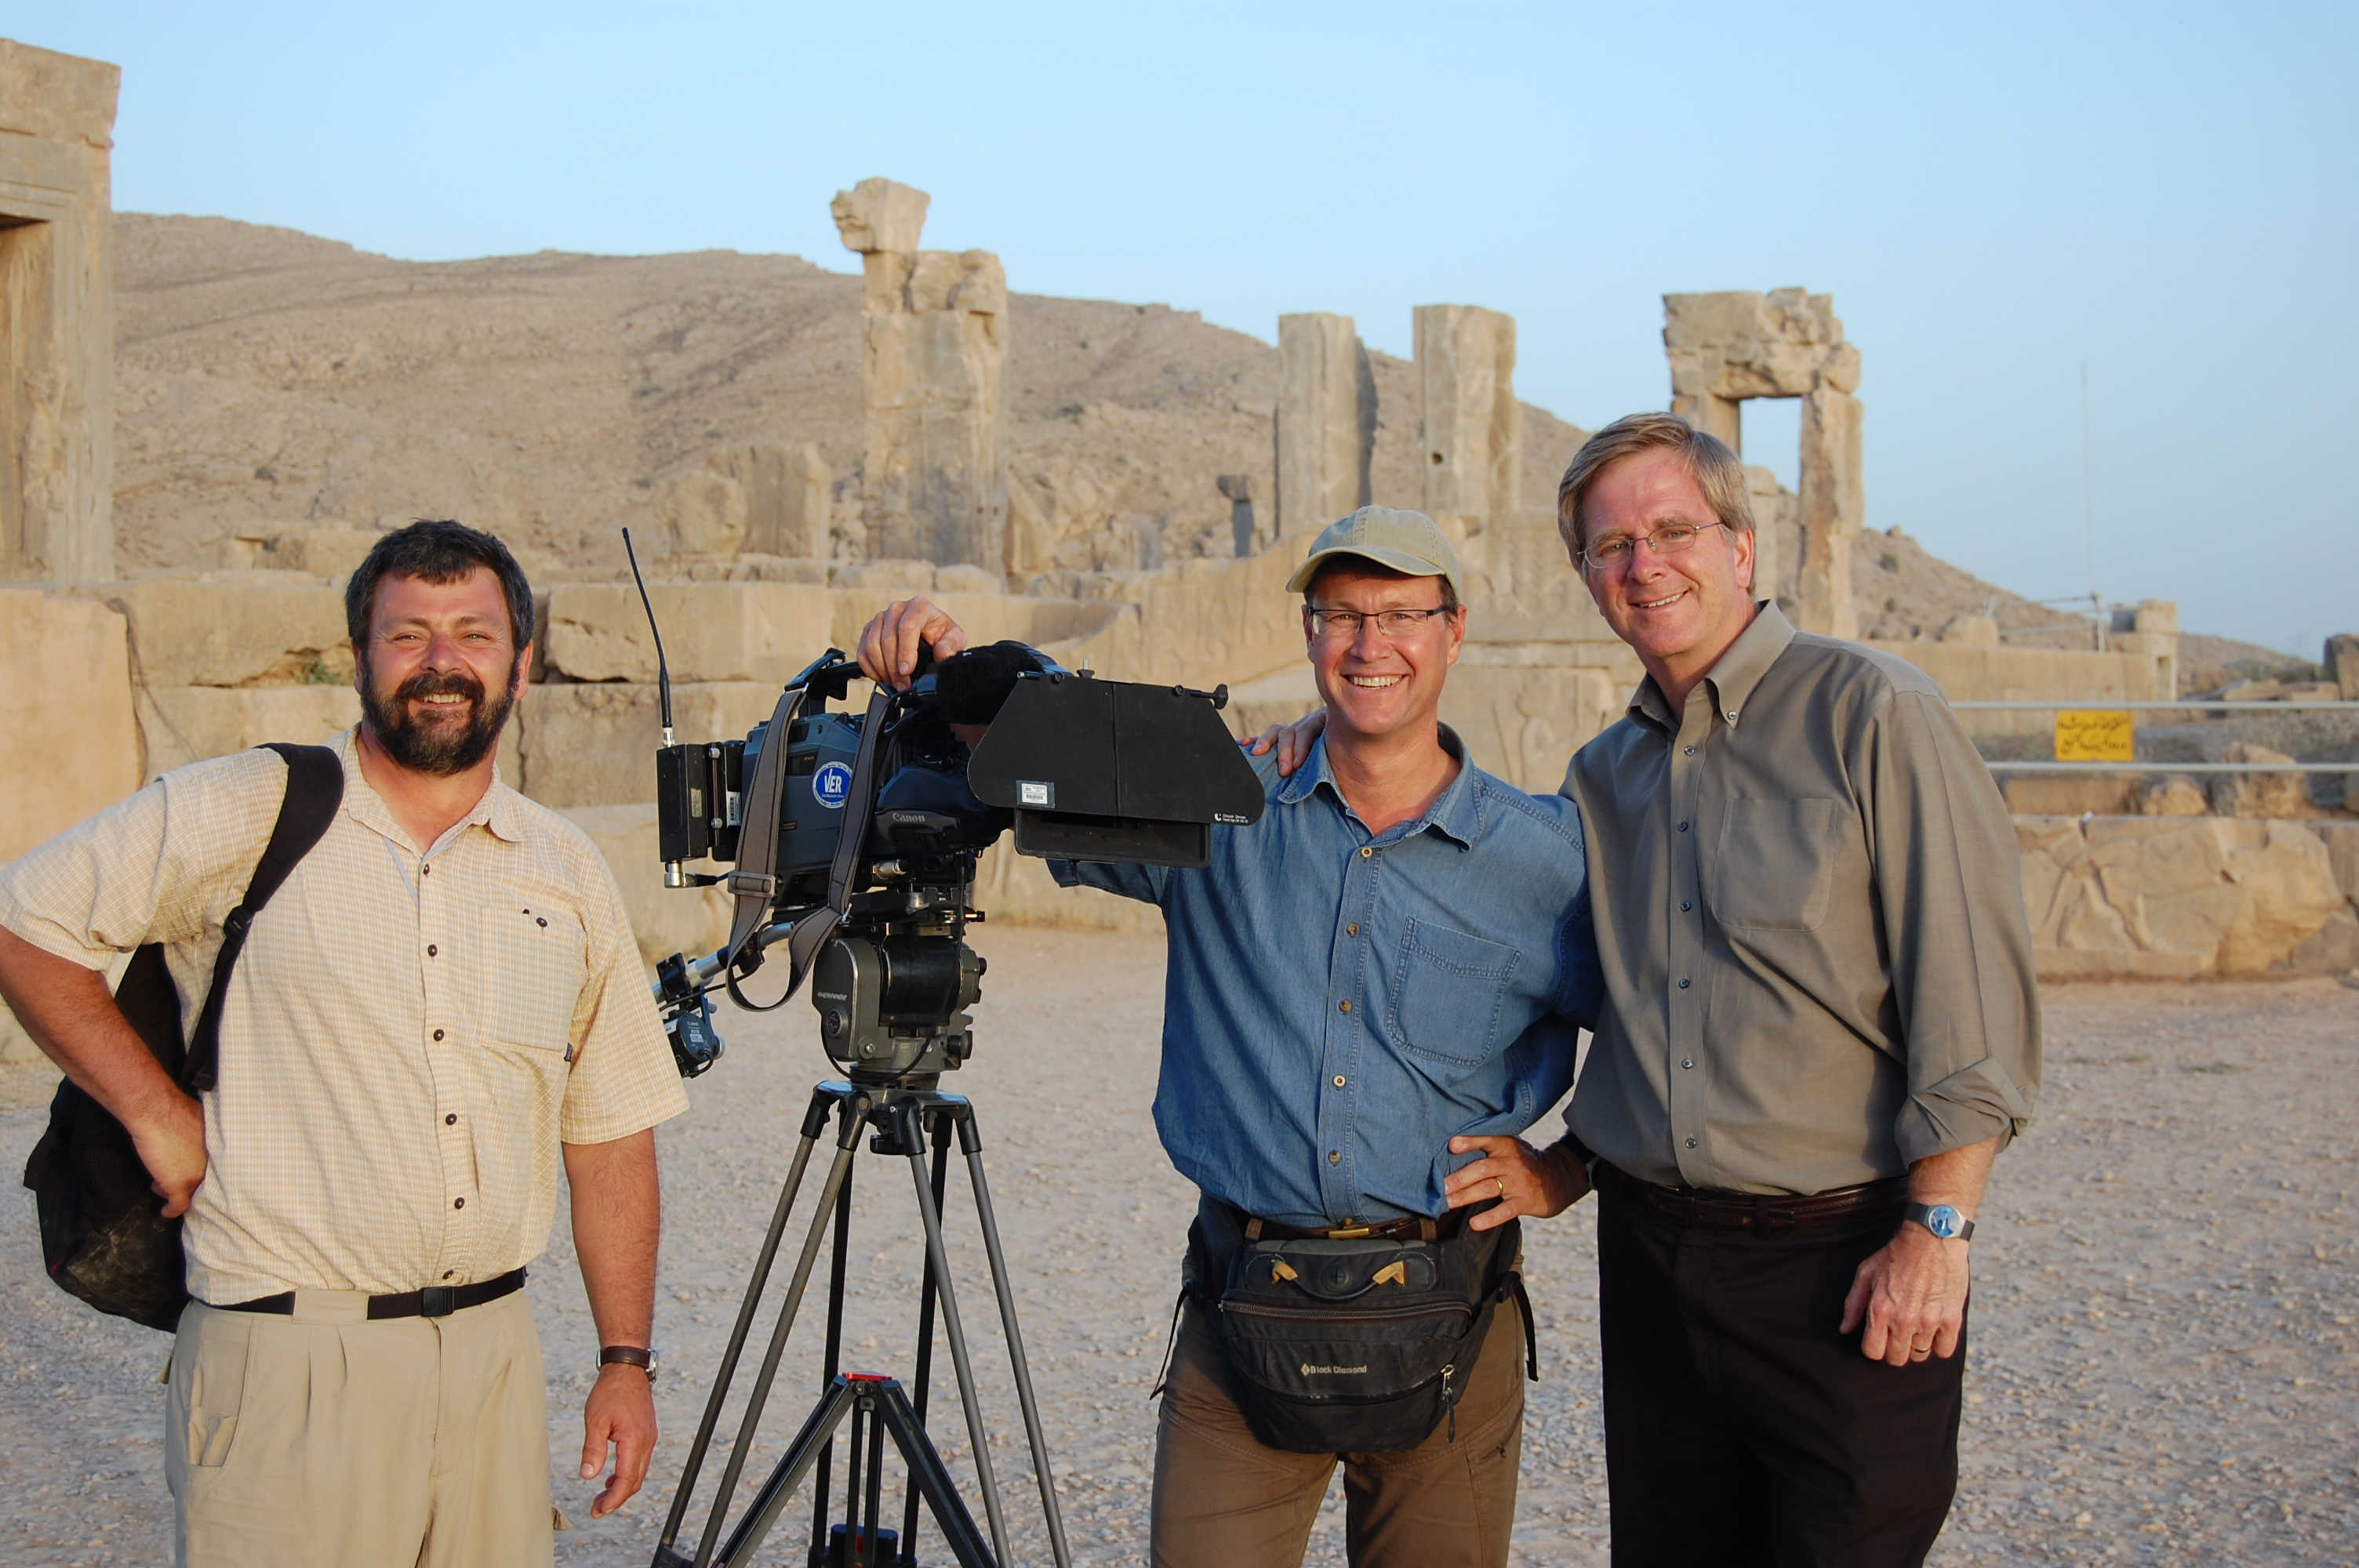 Filming on location in Persepolis